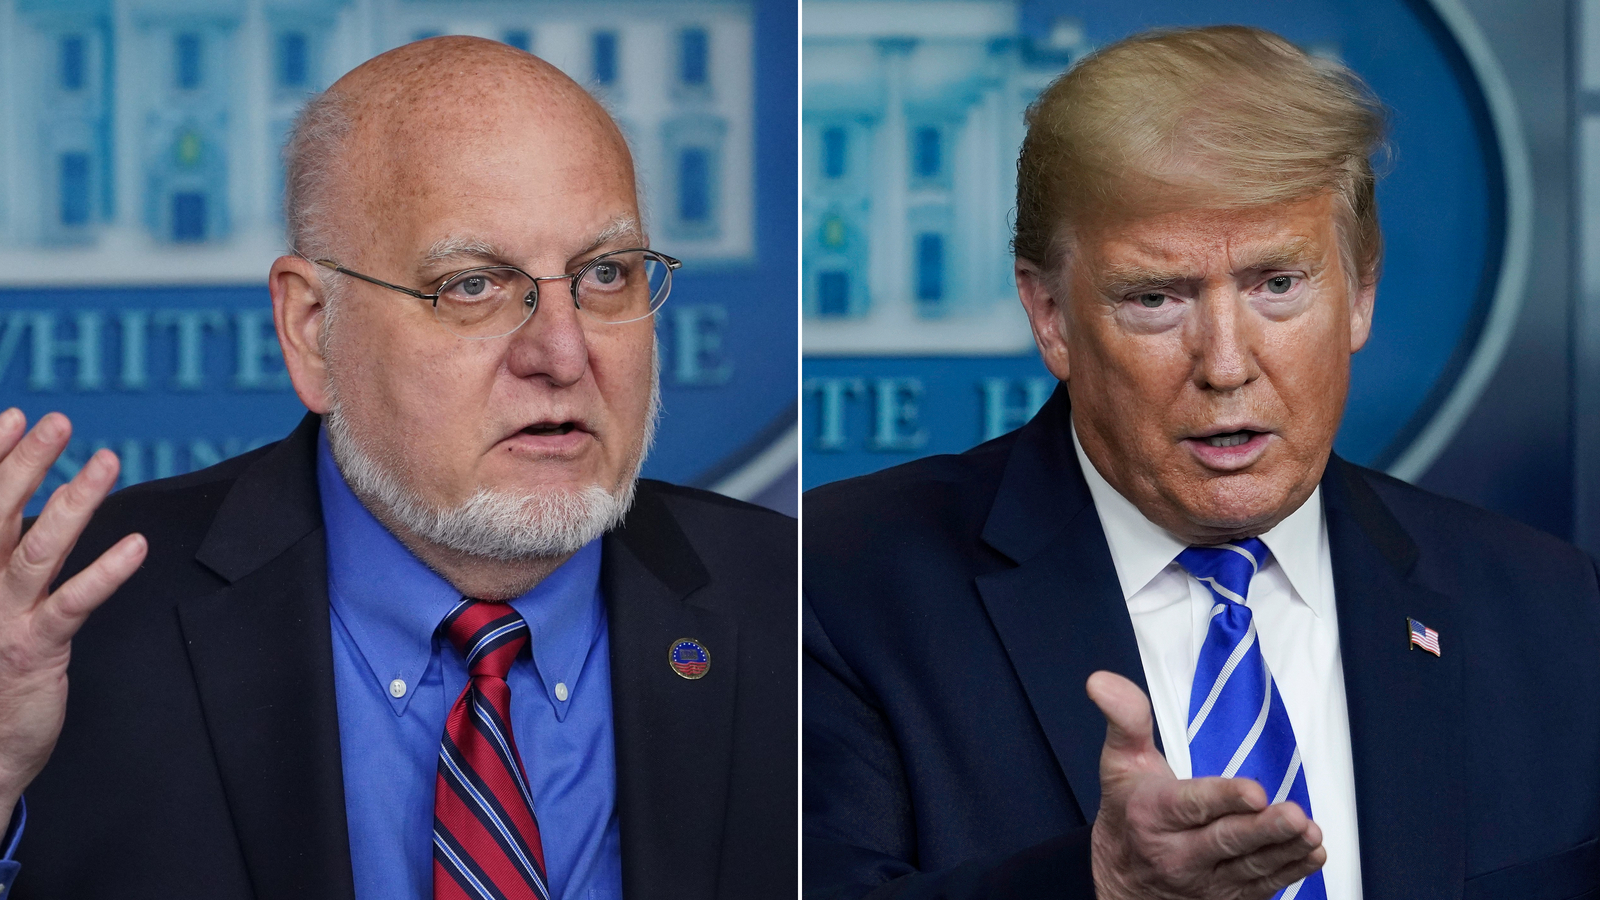 Trump has lost patience with CDC head after series of mixed messages